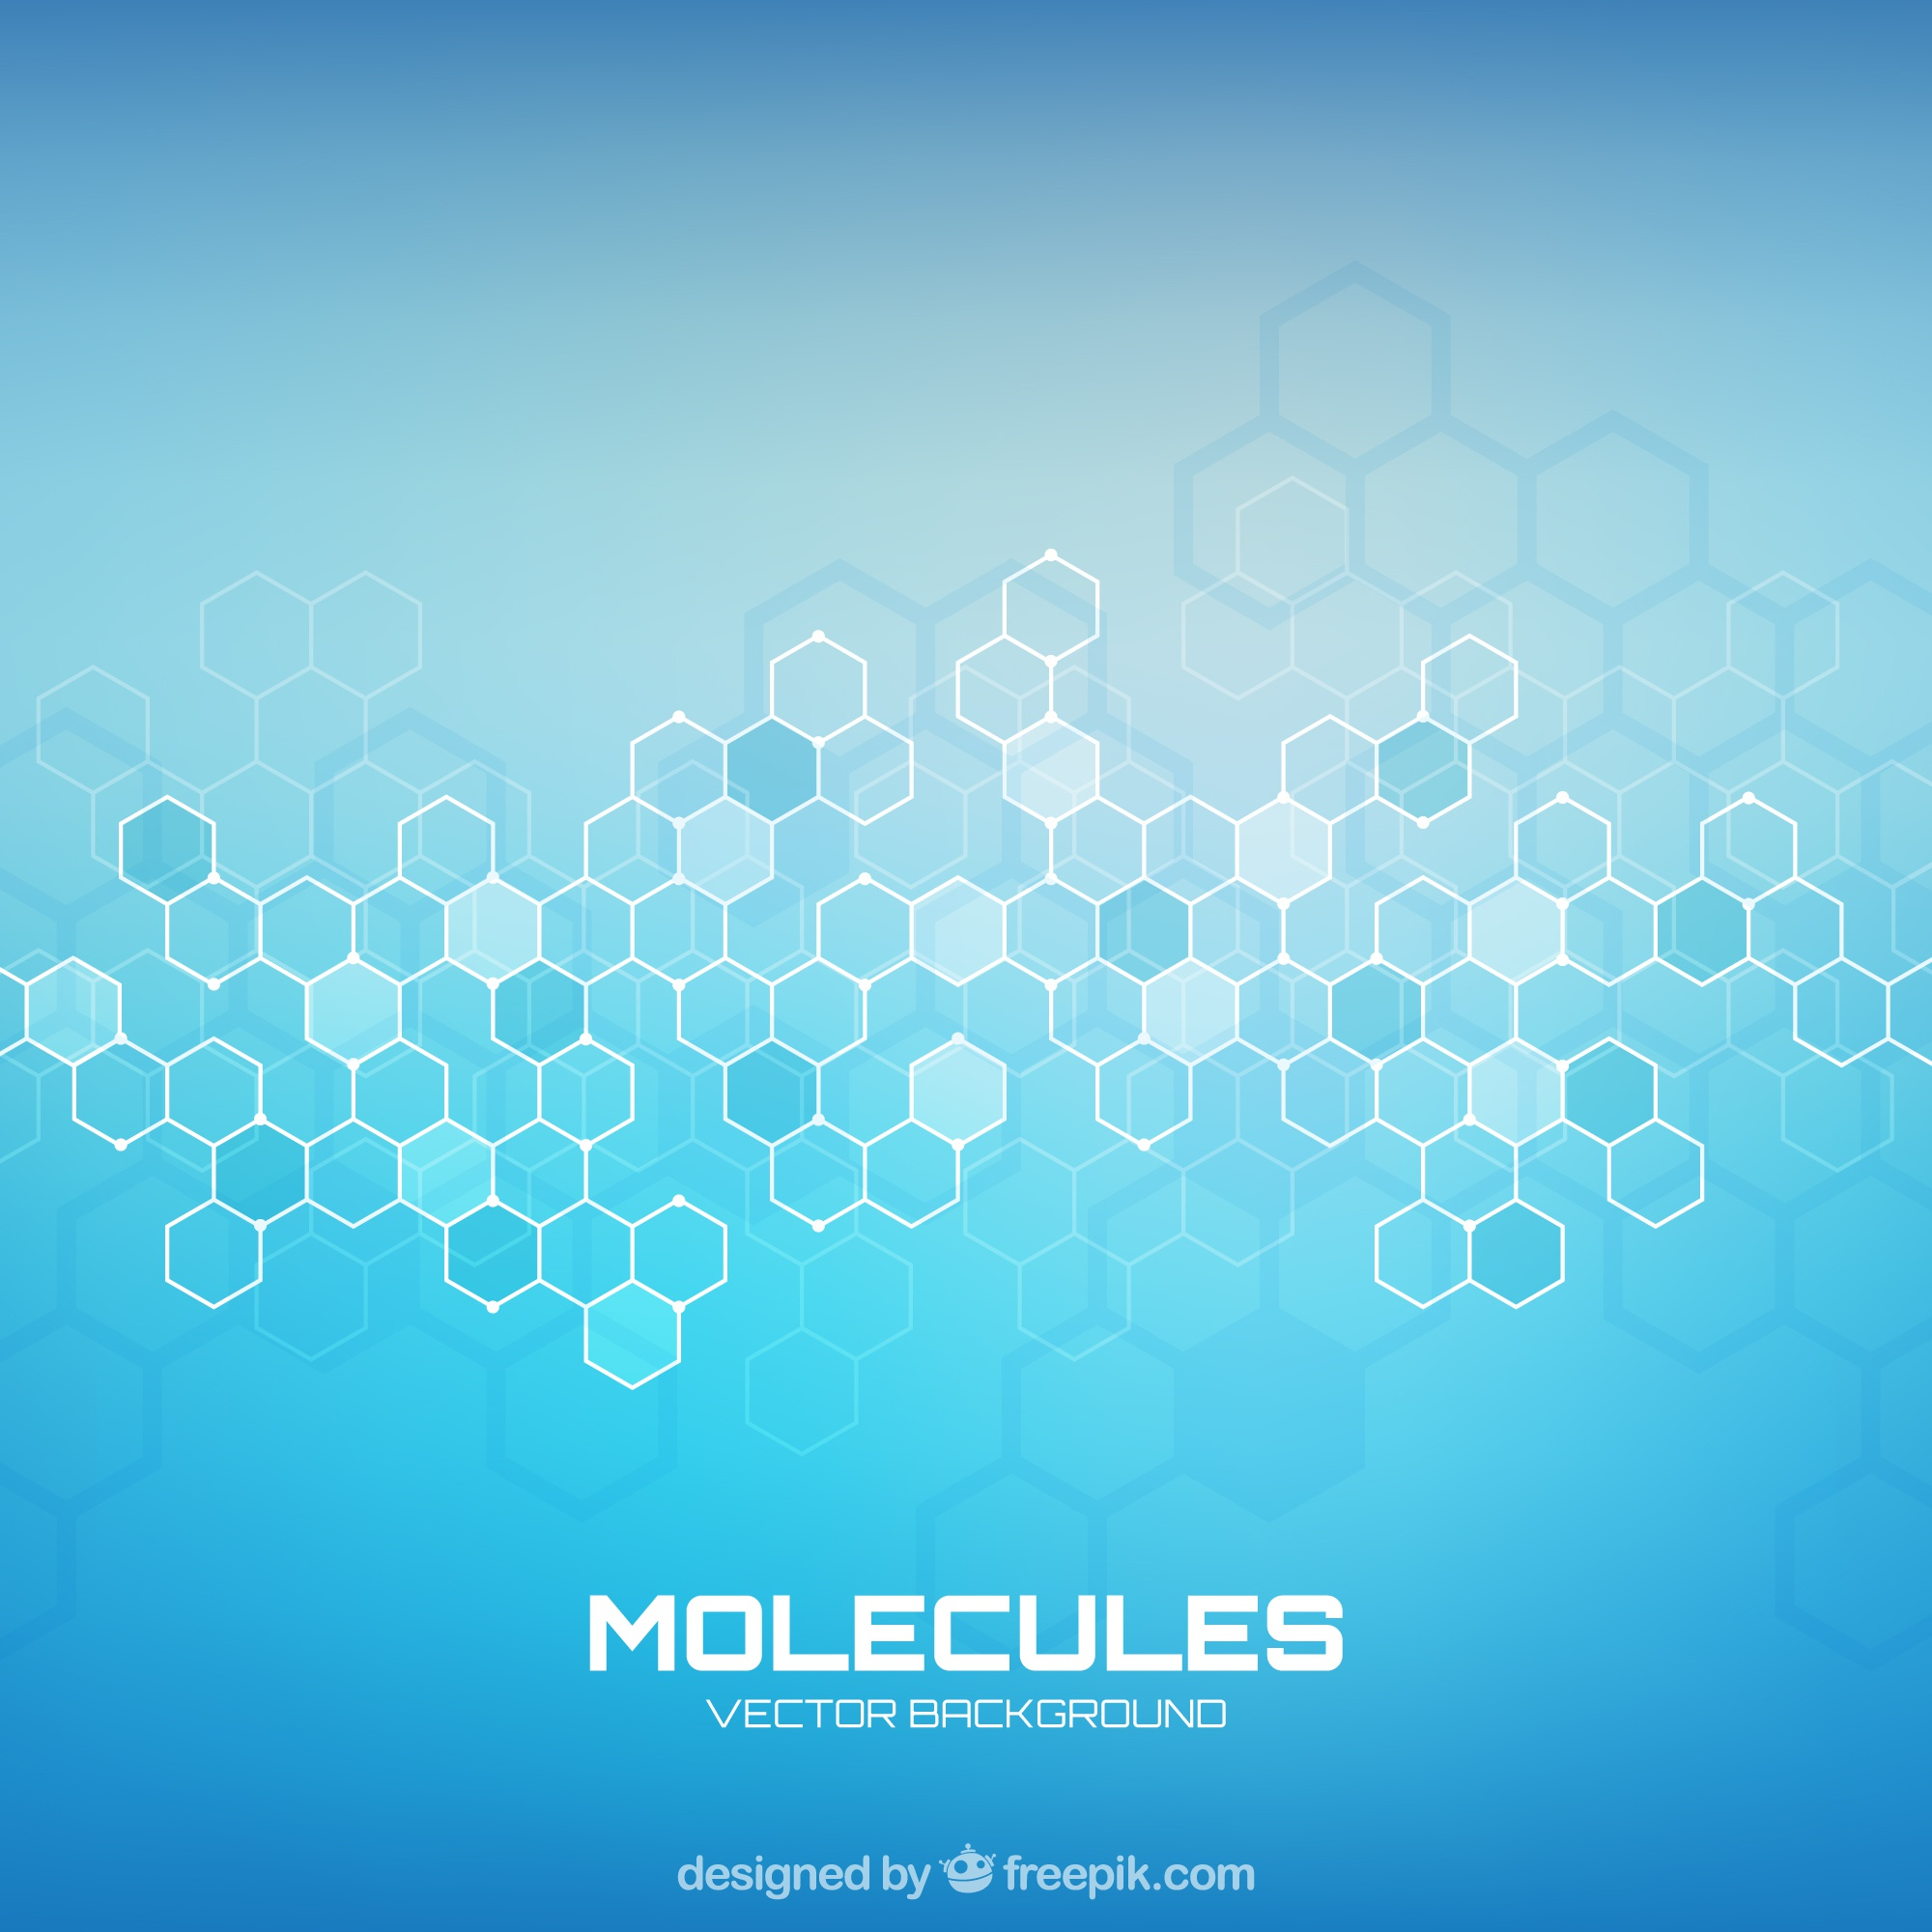 Molecules background with geometric style